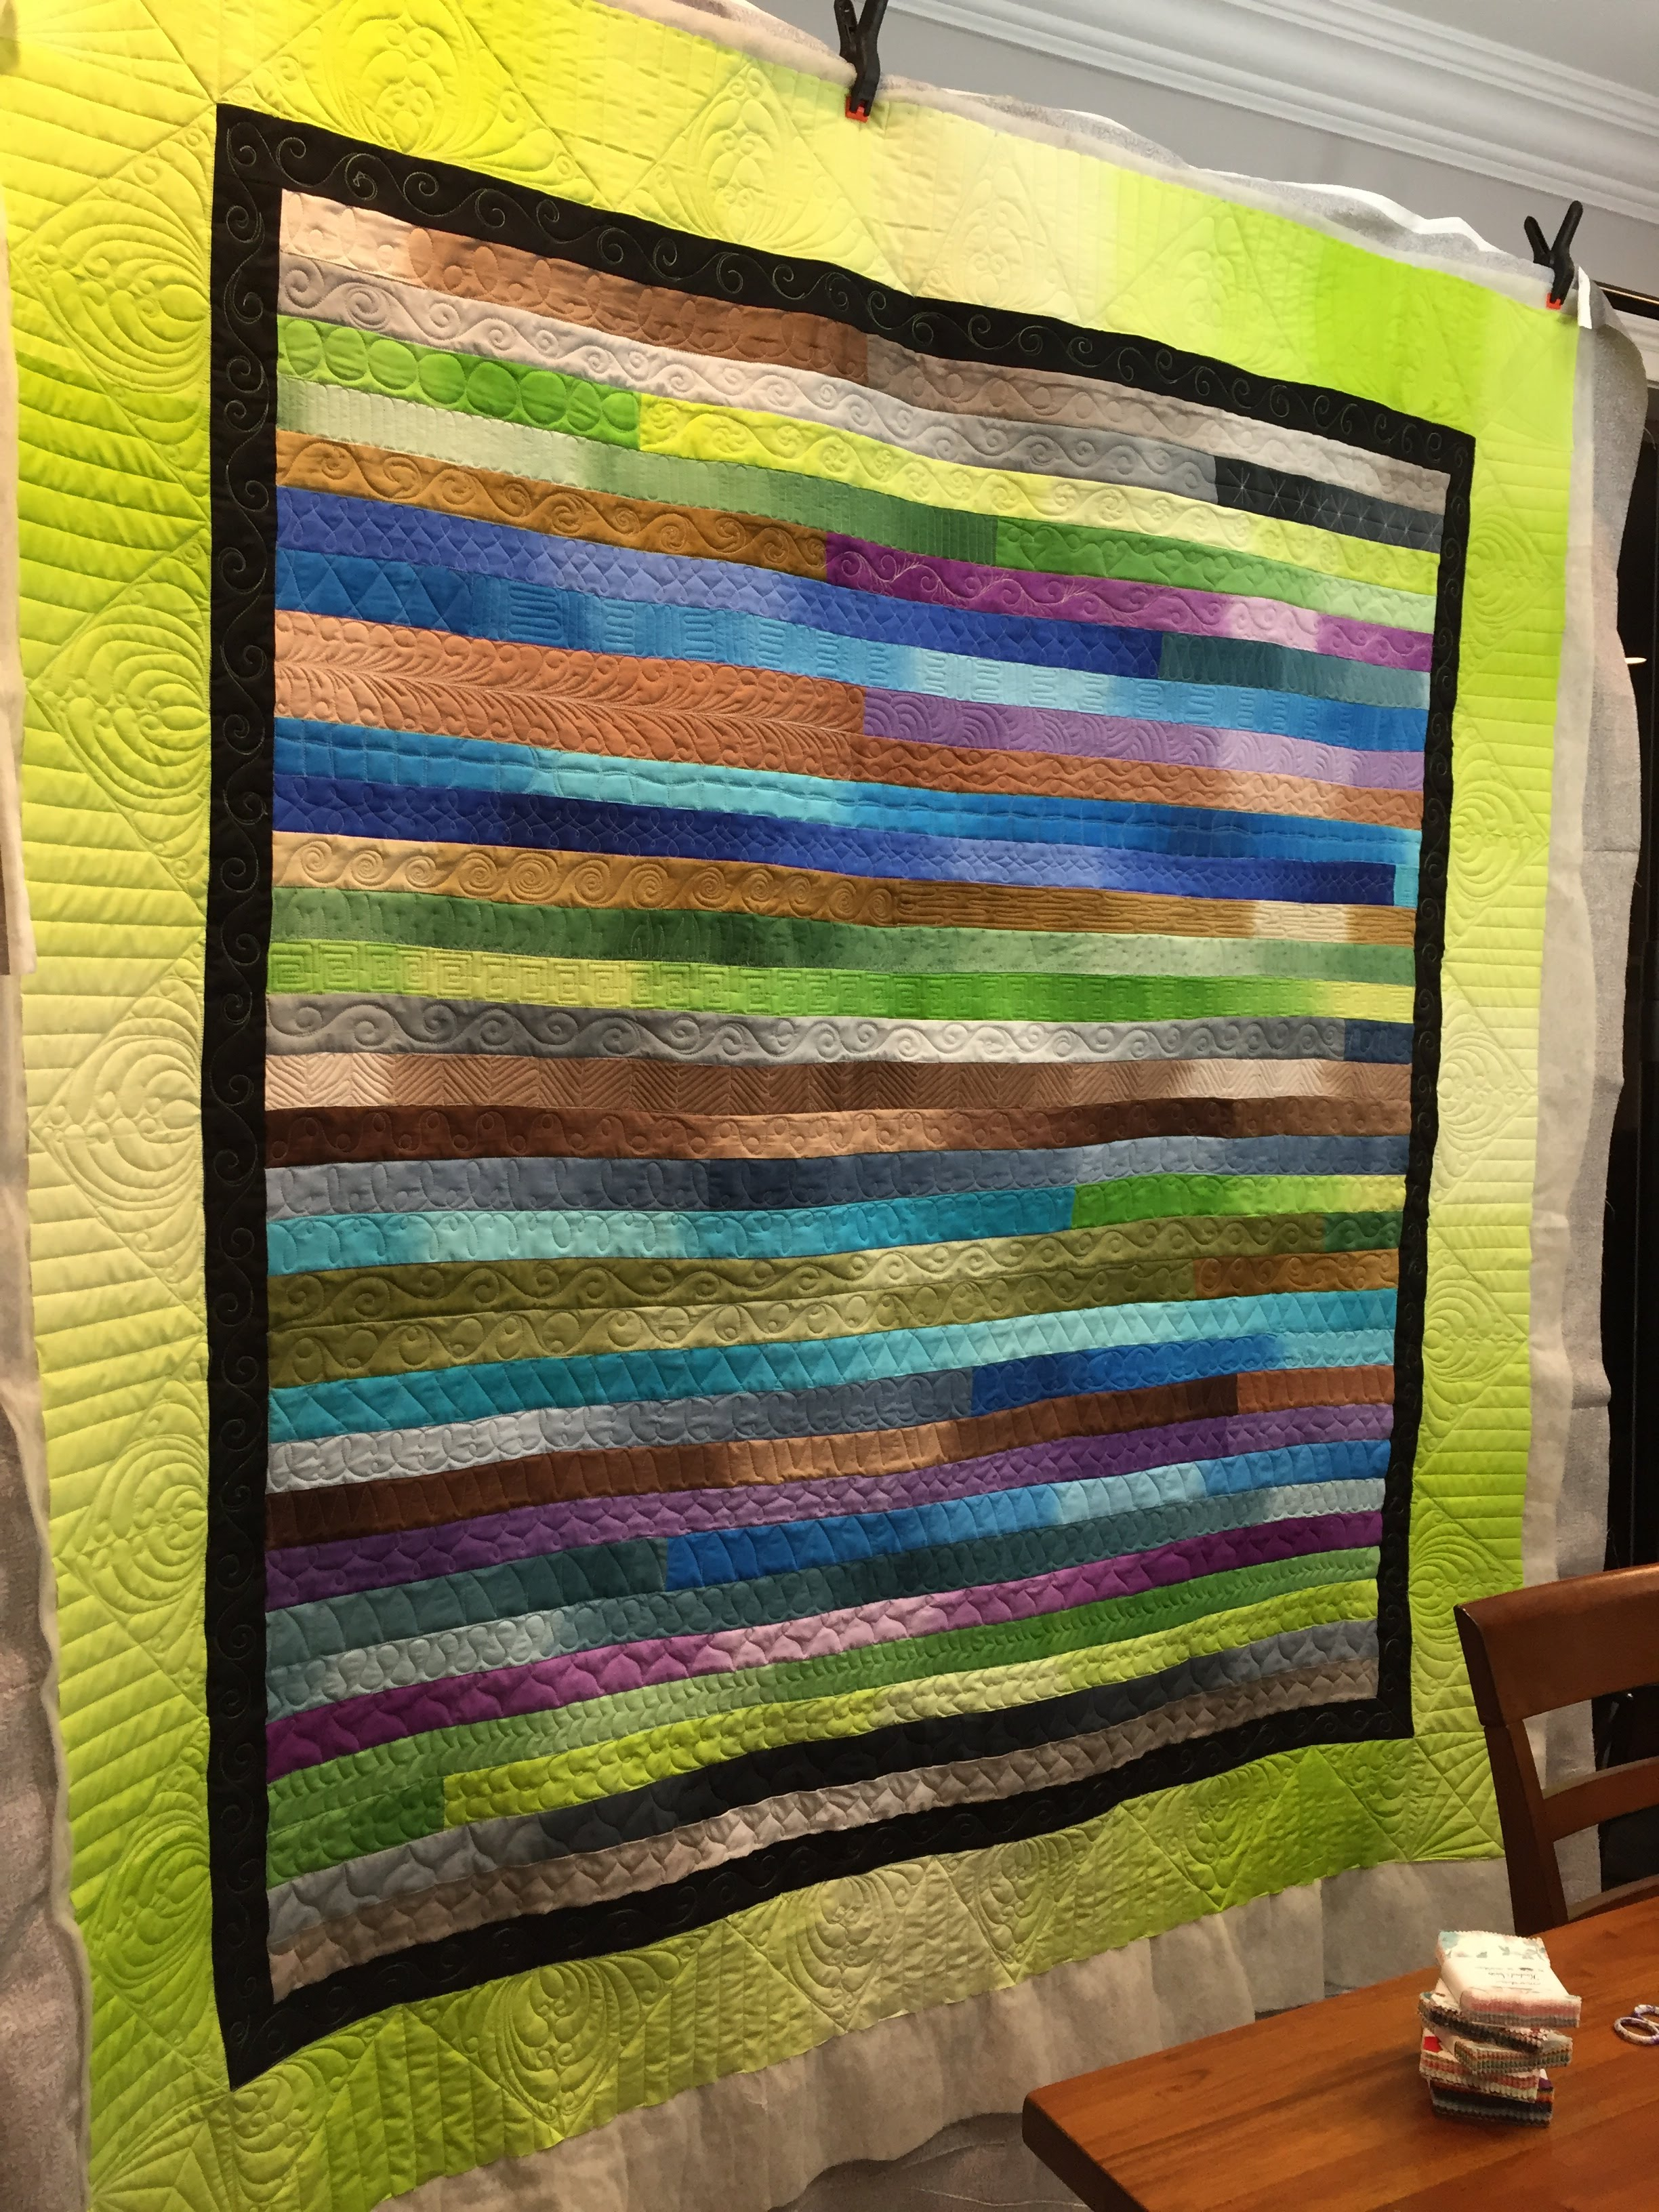 Quilting A Jelly Roll Race The Fun Way Dizzy Quilter